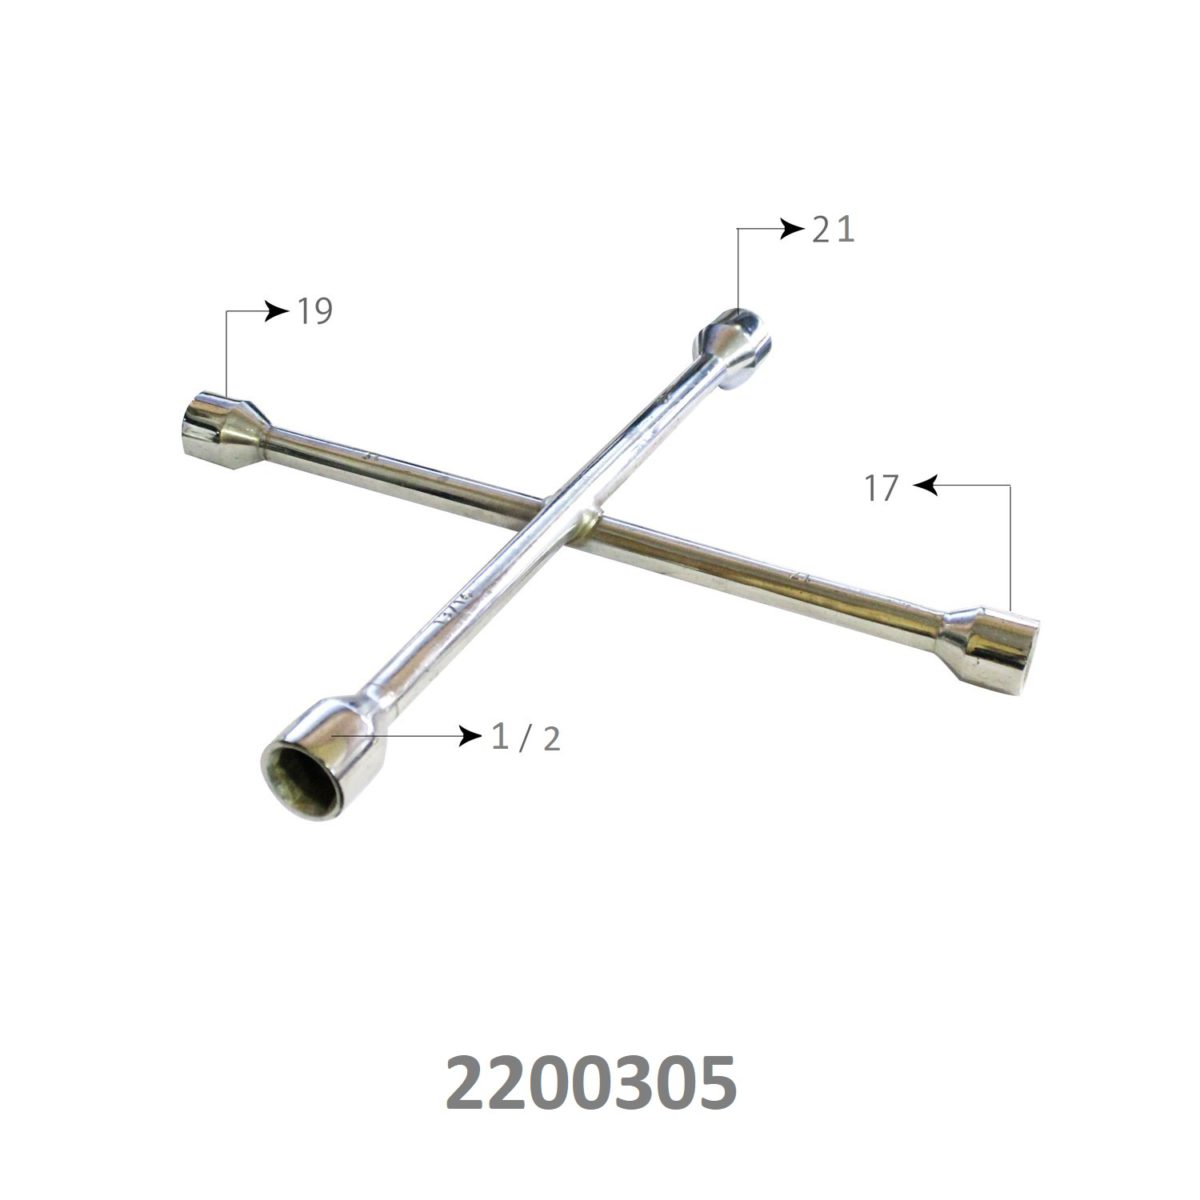 SARV Universal 4 way Cross Hex ,Wheel Nut Wrench 17mm X19mmx ,Combination mm & SAE lug wrench